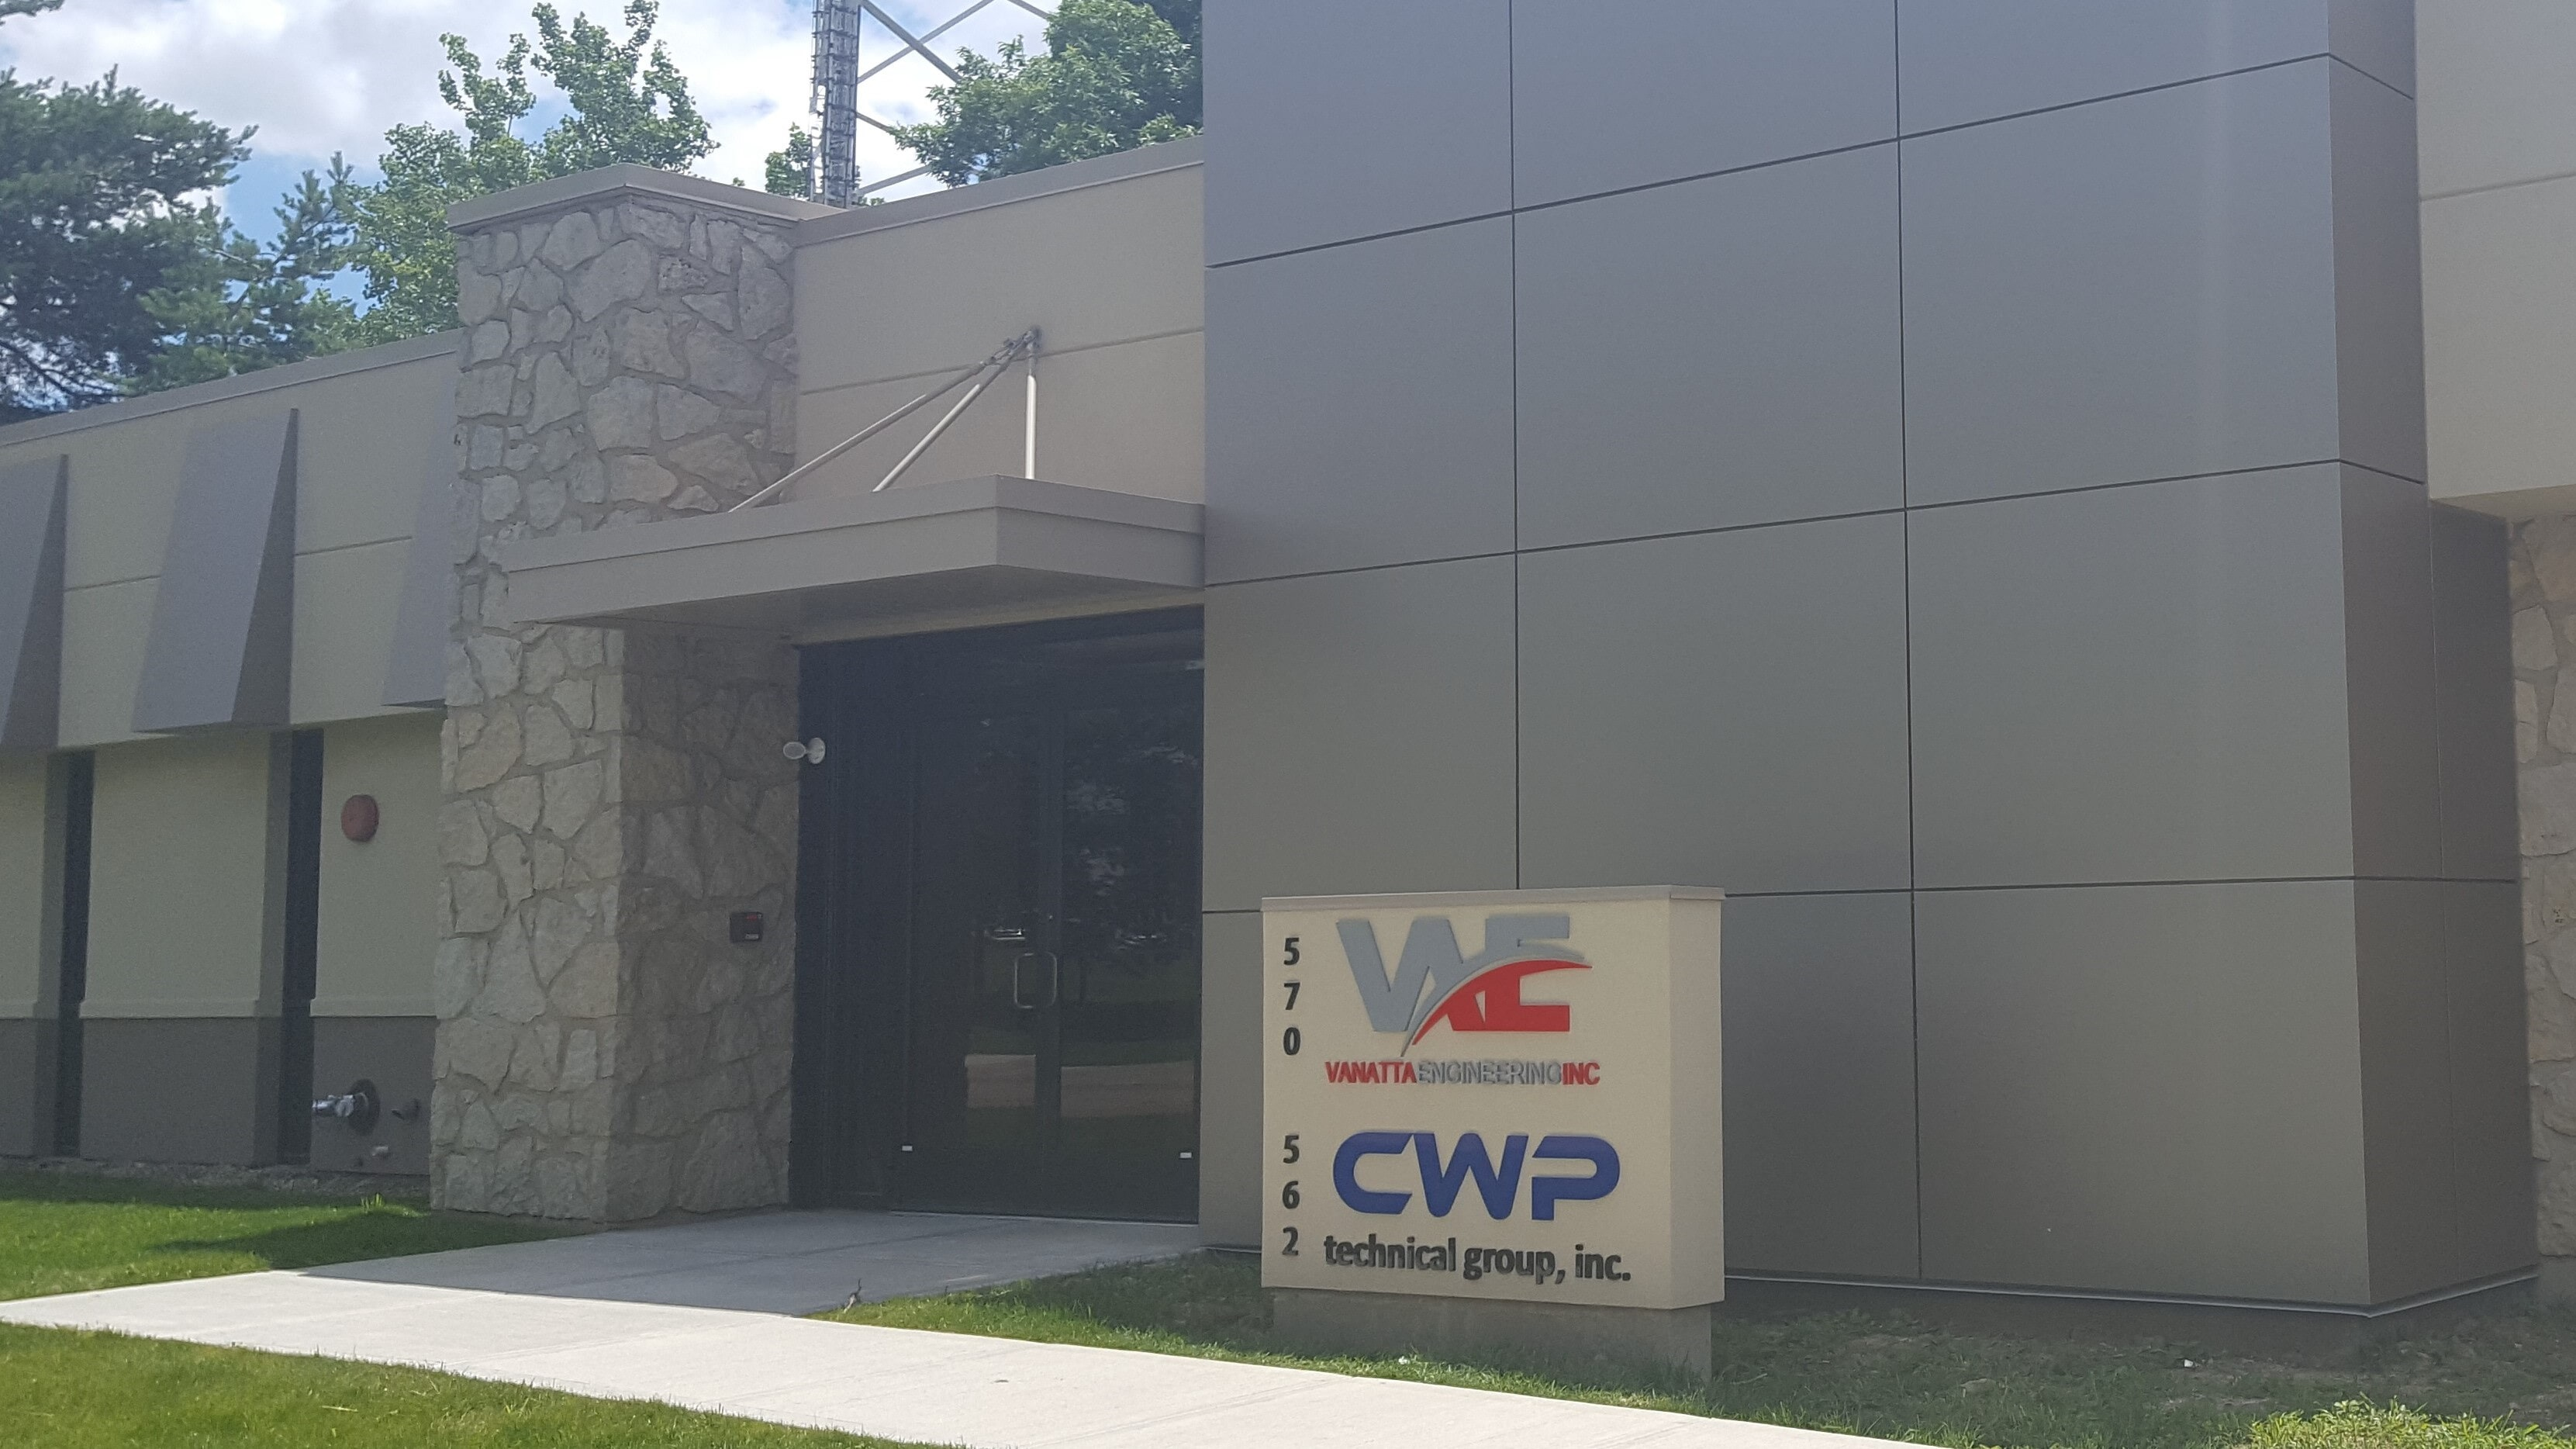 CWP Technical Group image 3